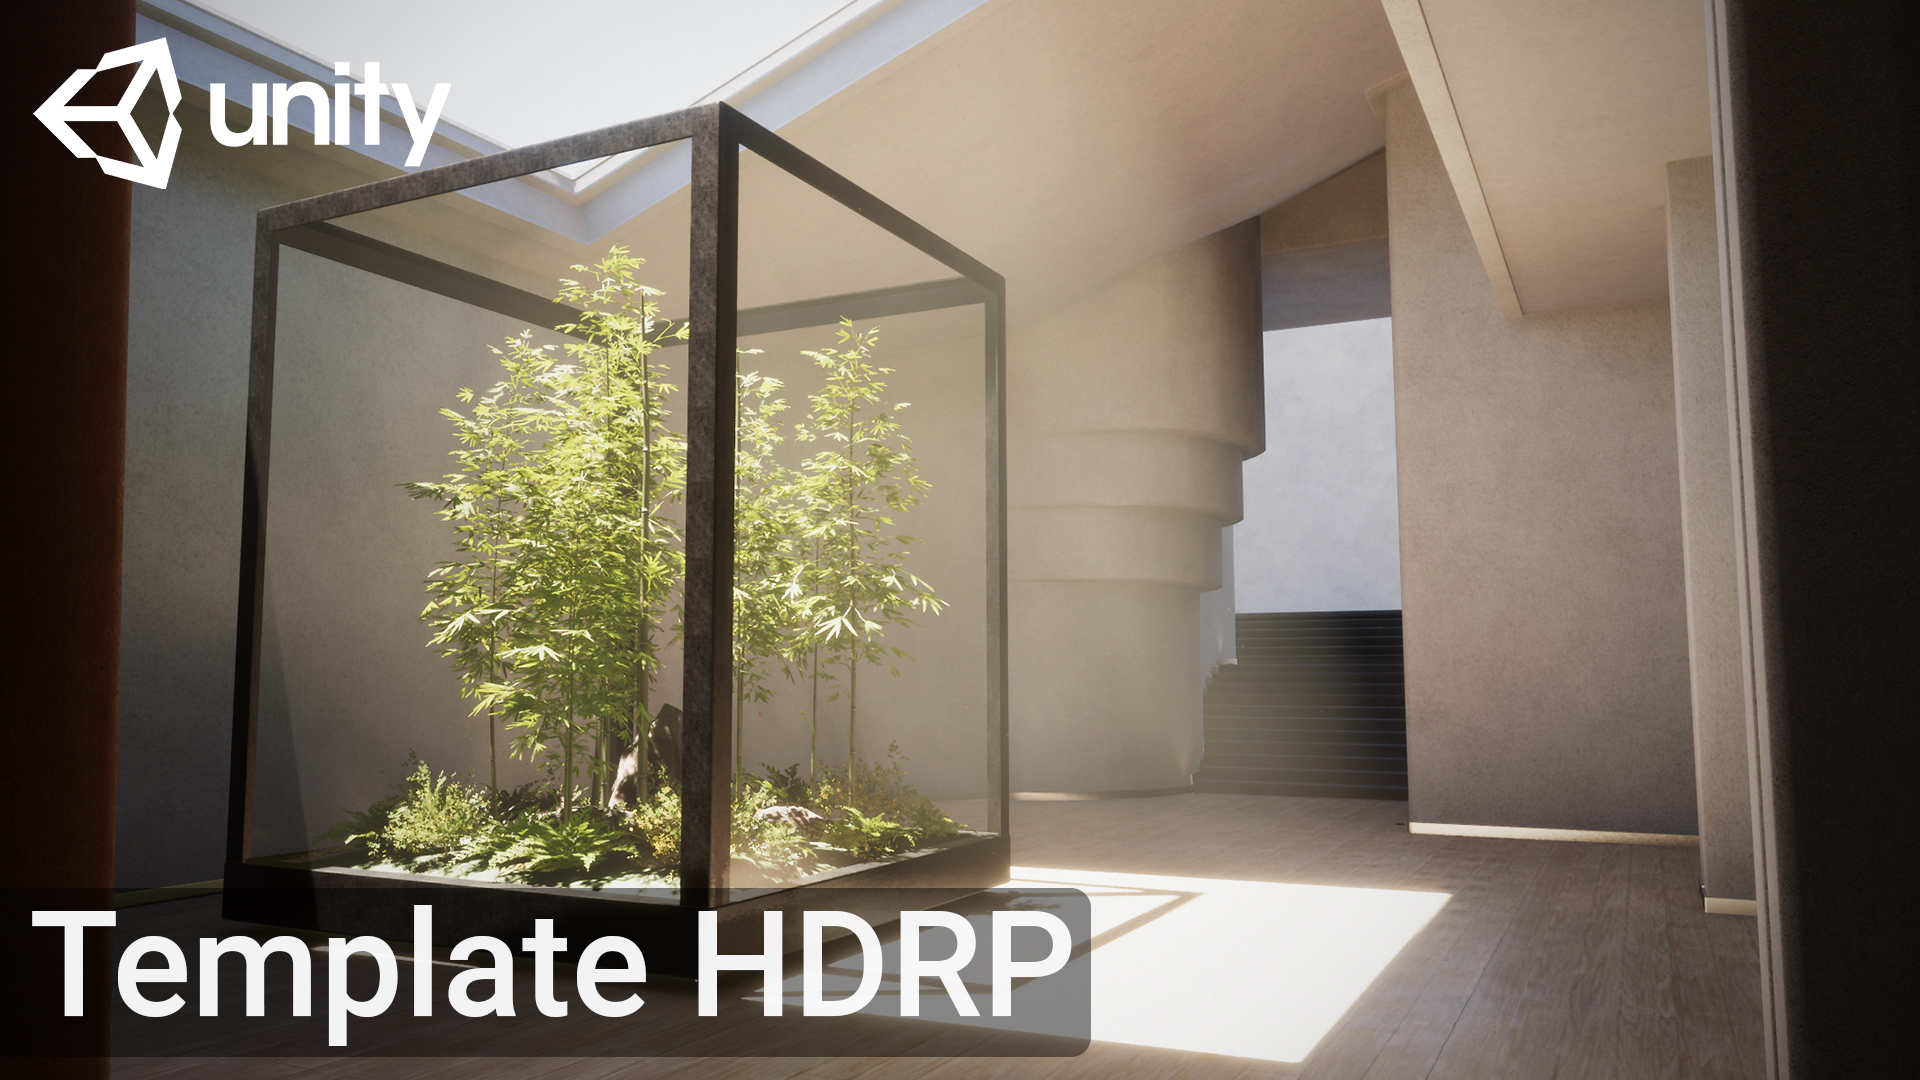 hdrp template unity officiel 2021